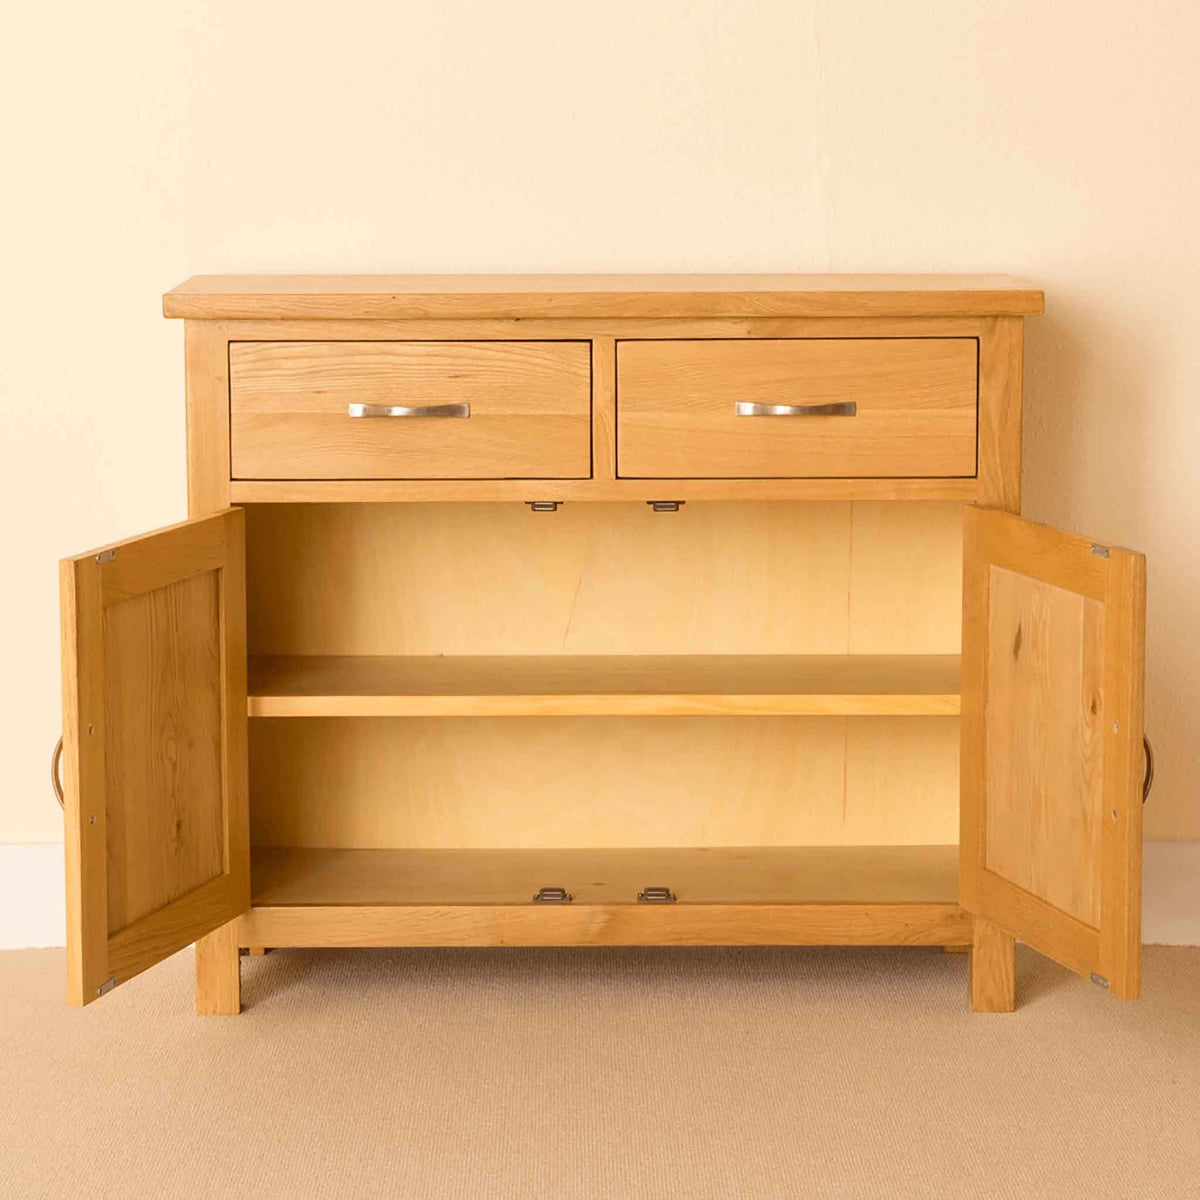 Newlyn Oak Small Sideboard with doors open